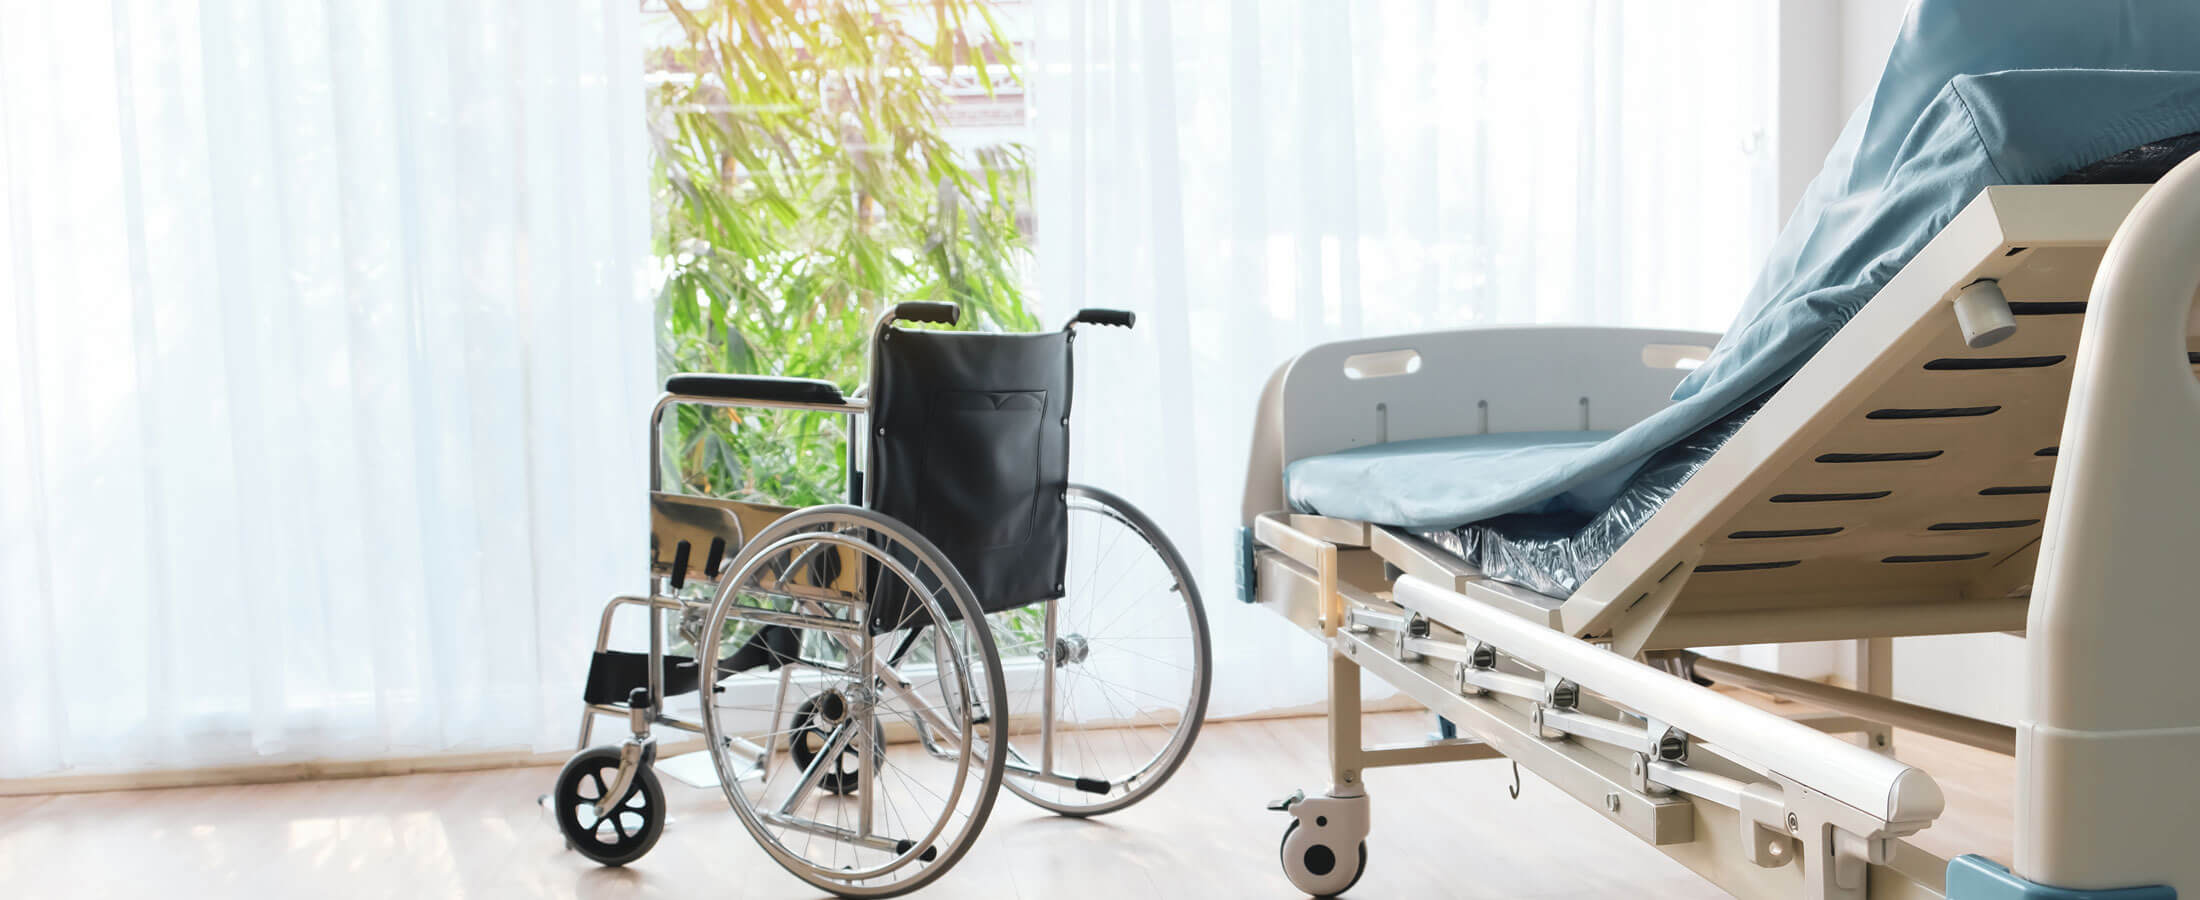 Hospital Room with Wheelchair and Bed